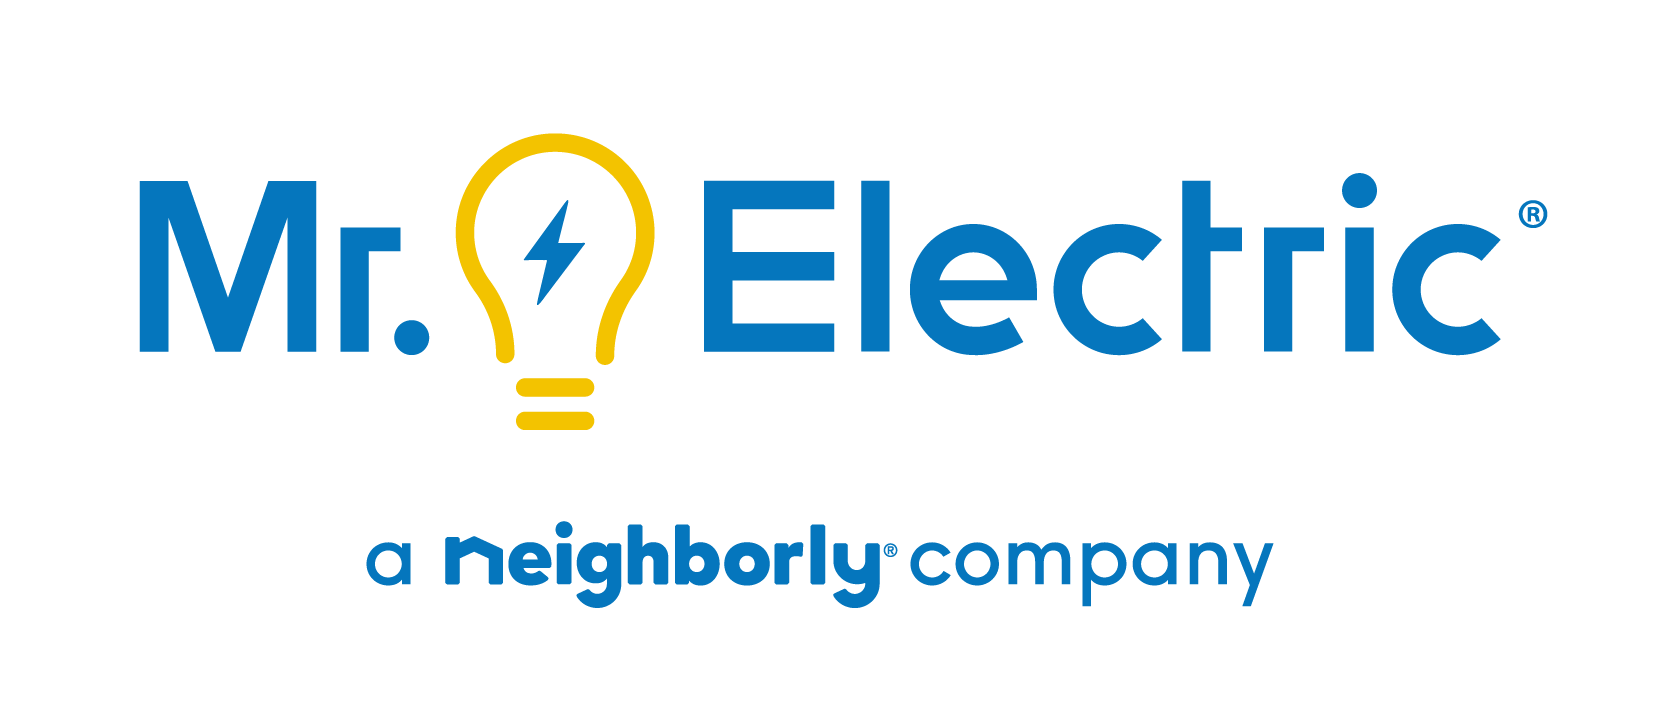 Mr. Electric of Beaumont